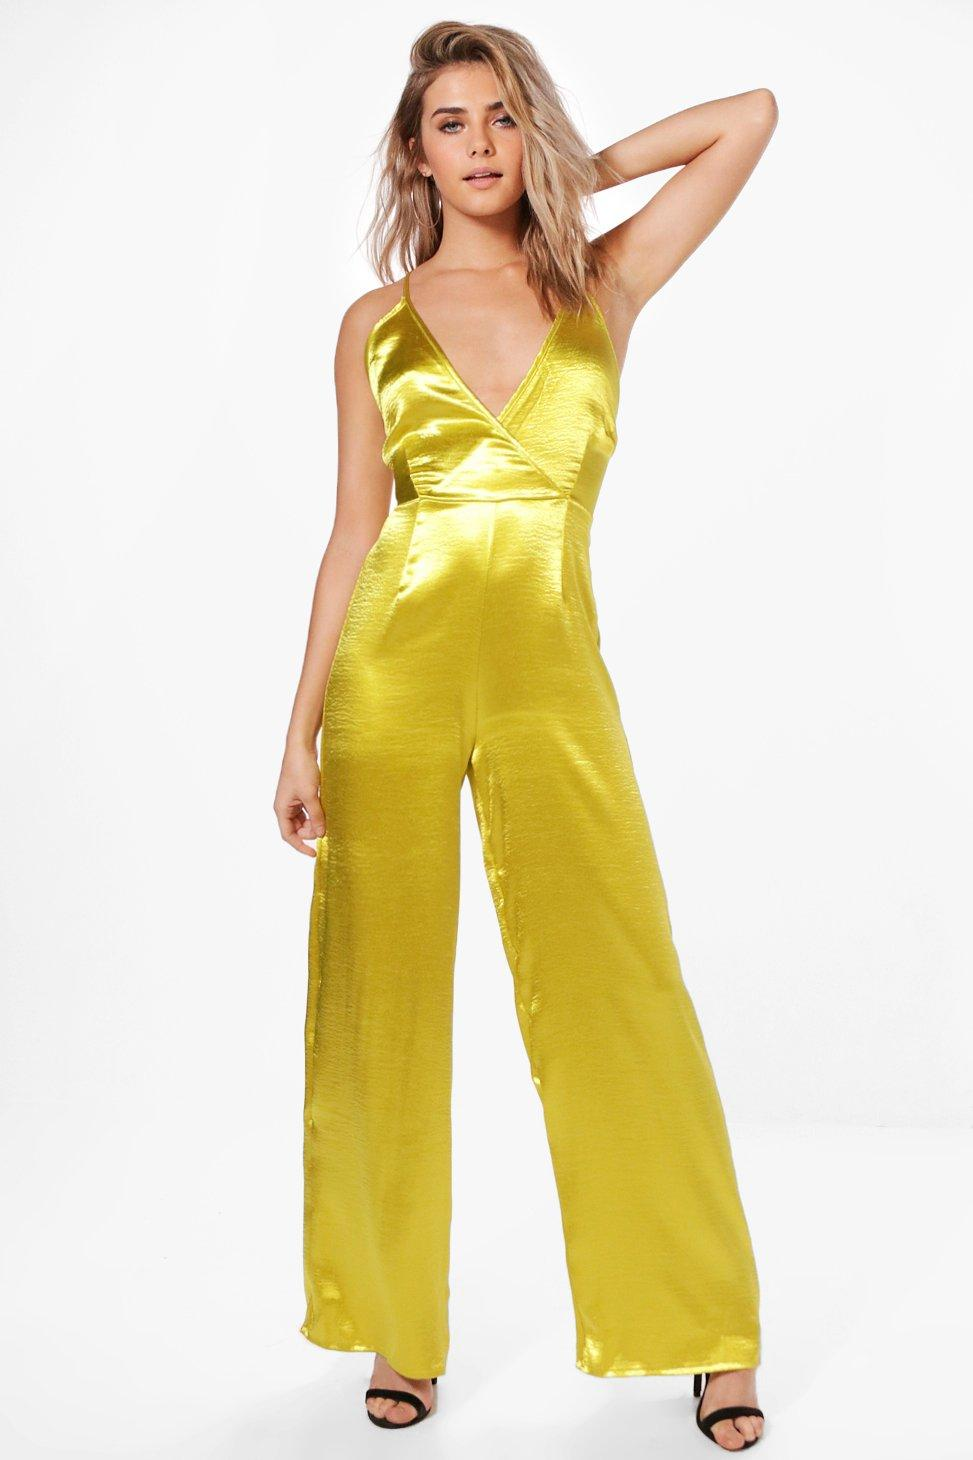 Sally Satin Wrap Front Strappy Jumpsuit